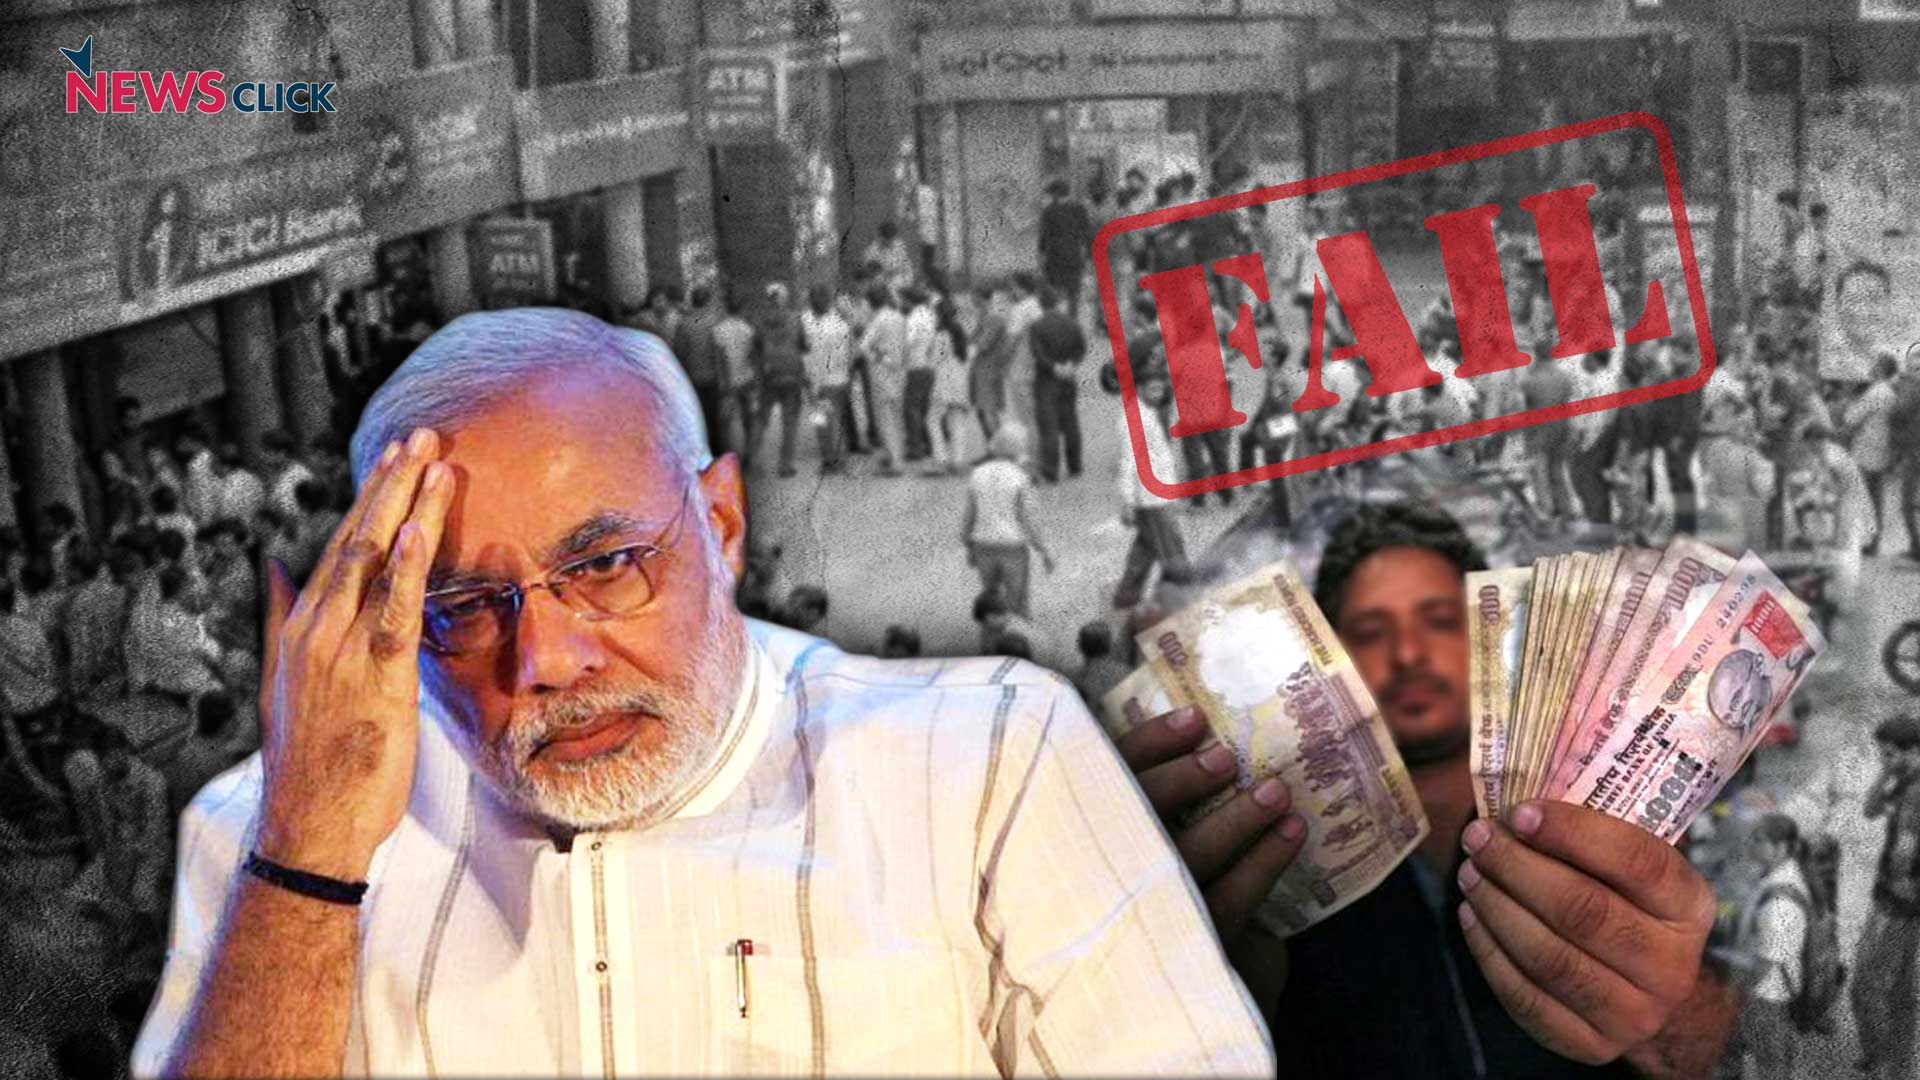 Demonetisation Failed: The Emperor is Naked